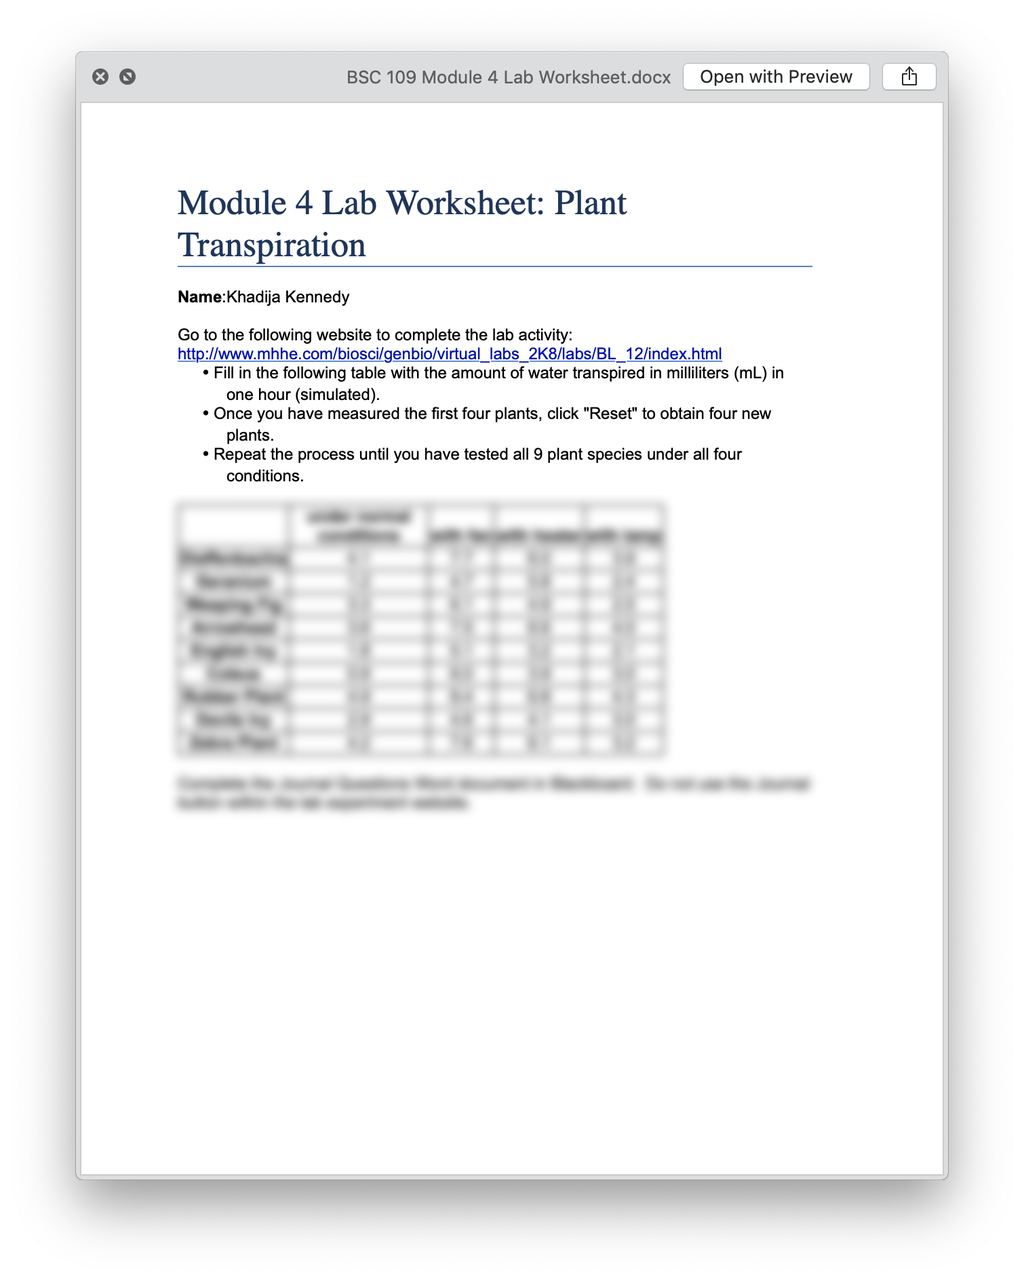 BSC 109 Module 4 Lab Worksheet Plant Transpiration (Alabama)